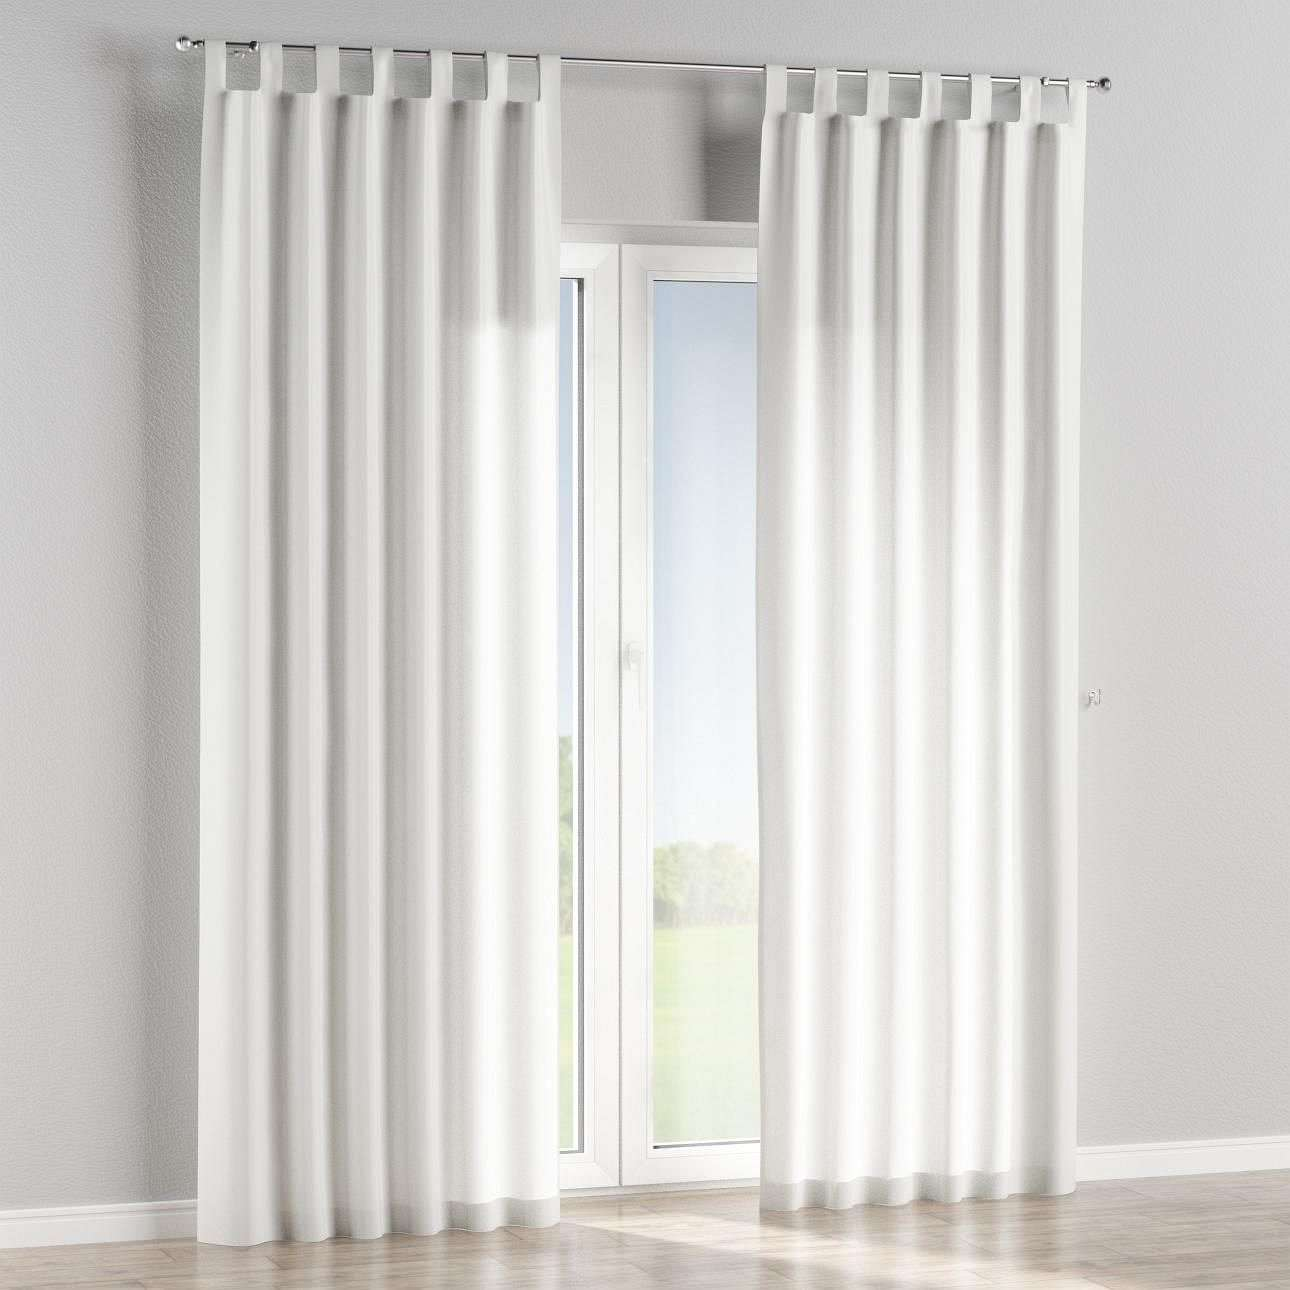 Tab top curtains in collection Freestyle, fabric: 140-57